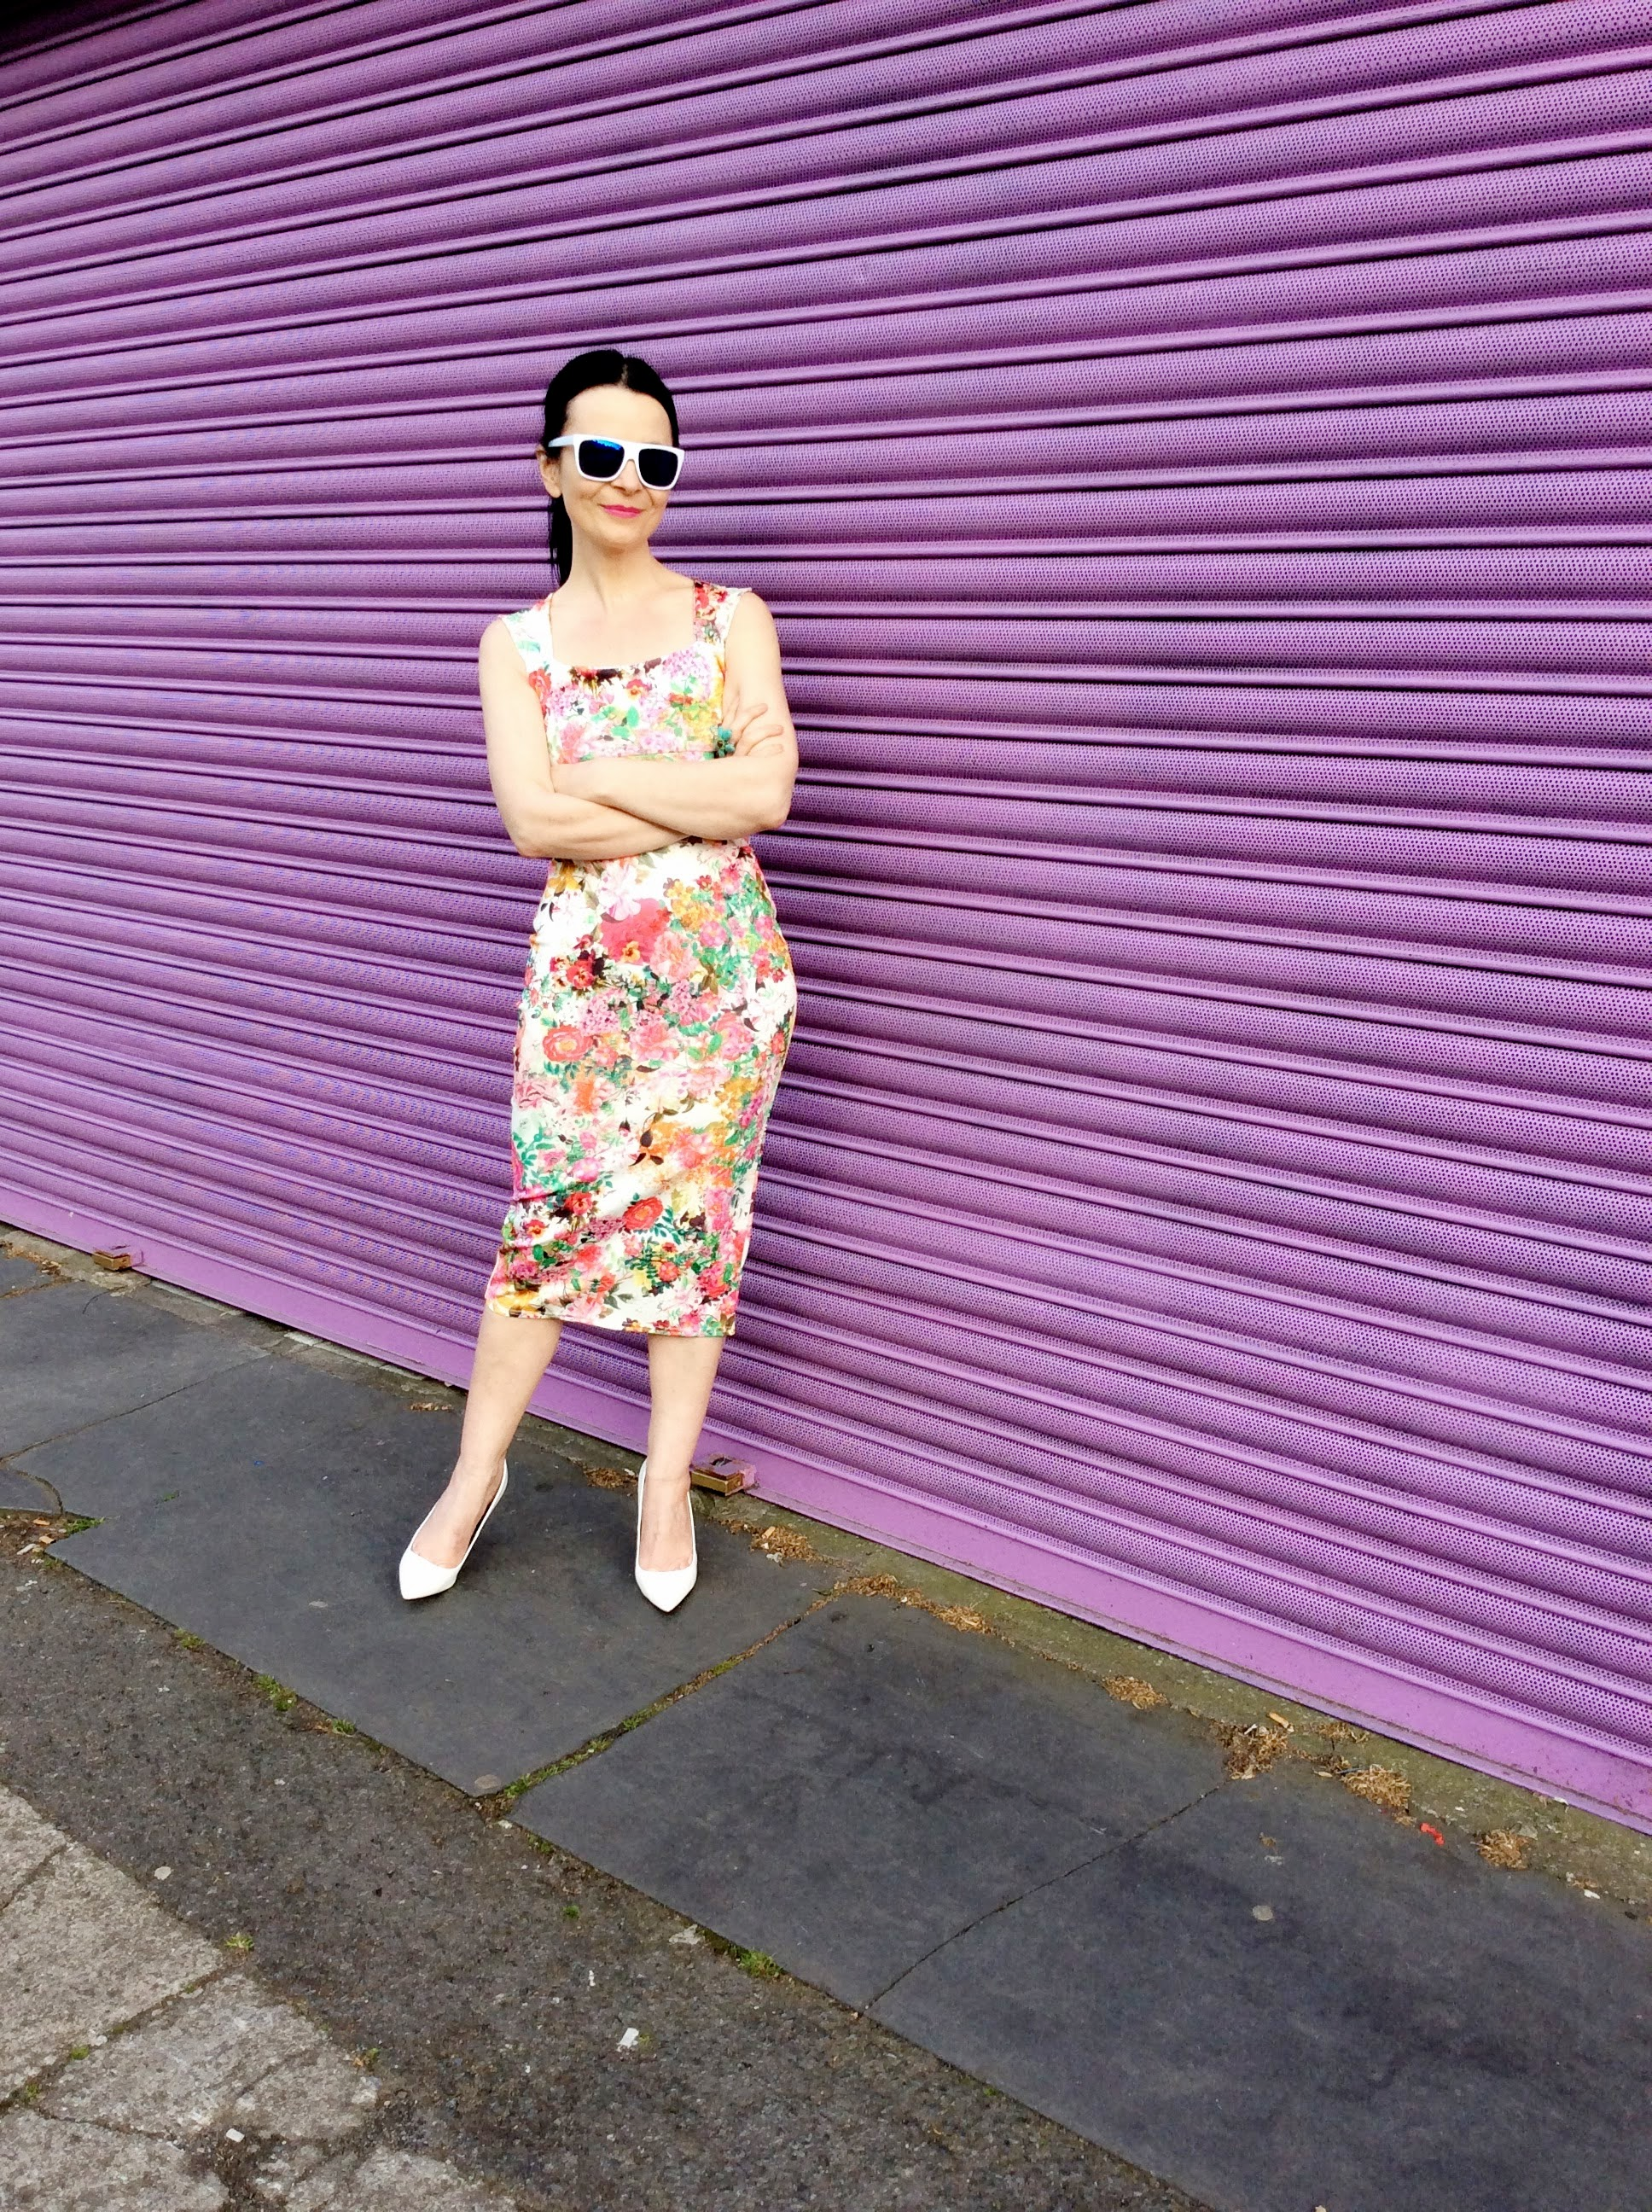 This floral Dress combined with white pumps gives a modern vibe!